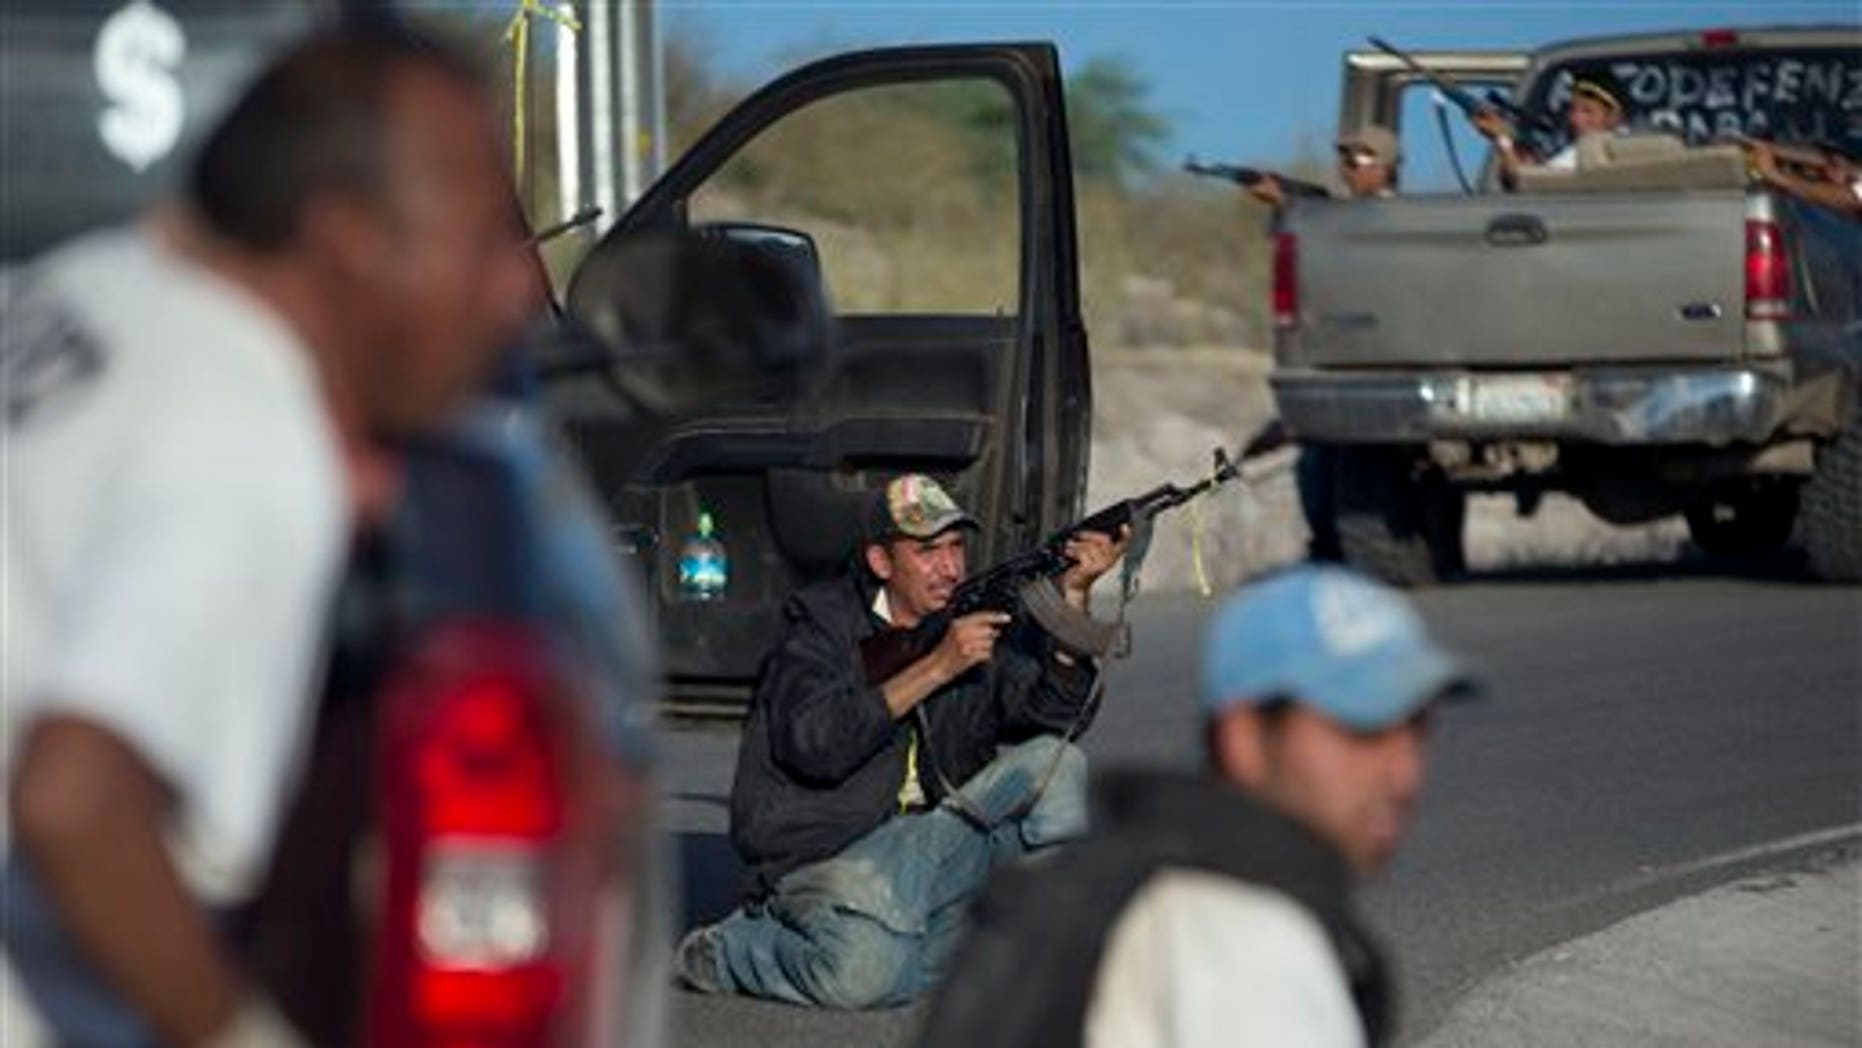 """Member of a self-defense group barricade themselves against possible a possible ambush  as they arrive to the village of Las Yeguas, Michoacan state, Mexico, Saturday, Jan. 11, 2014. Residents from various towns in Michoacan are protesting the arrival of vigilantes, or members of """"self-defense"""" groups, to their communities. Vigilante groups have formed to confront drug cartels in parts of Michoacan. The Knights Templar ( Los Templarios ), a quasi-religious drug cartel, controls the area and most of the state.(AP Photo/Eduardo Verdugo)"""